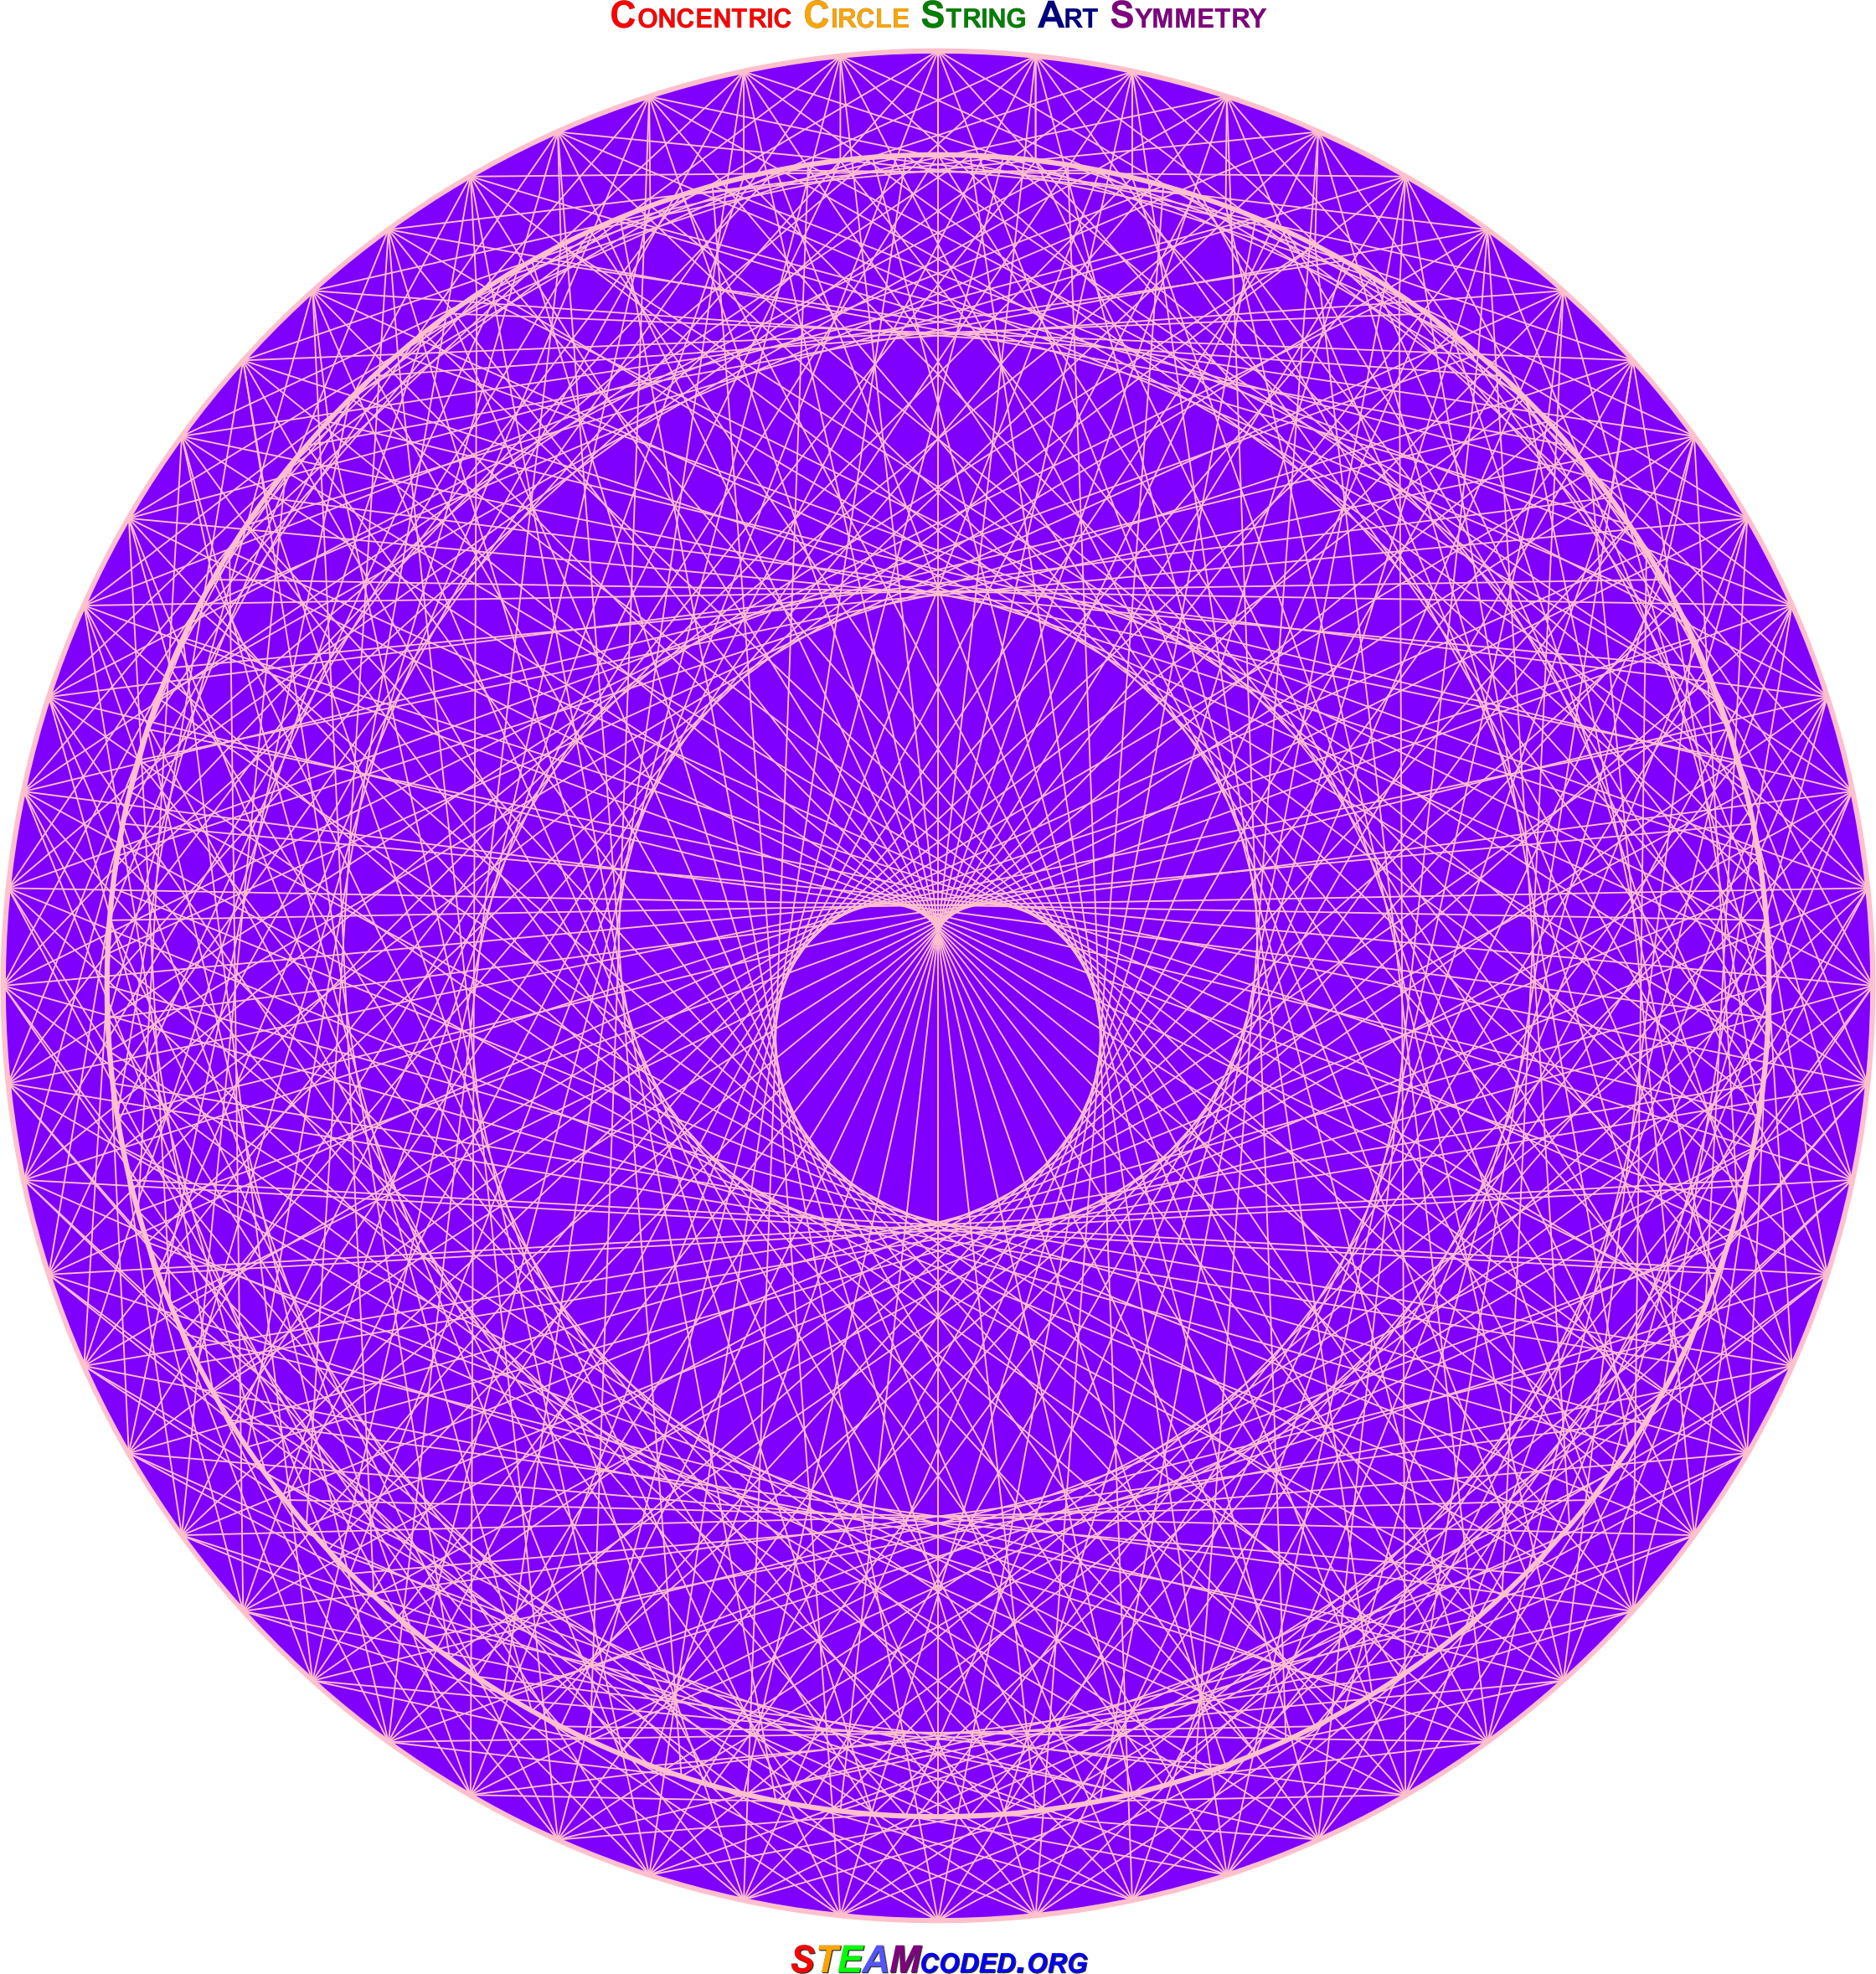 Concentric Circle Symmetry 4 by JayNick